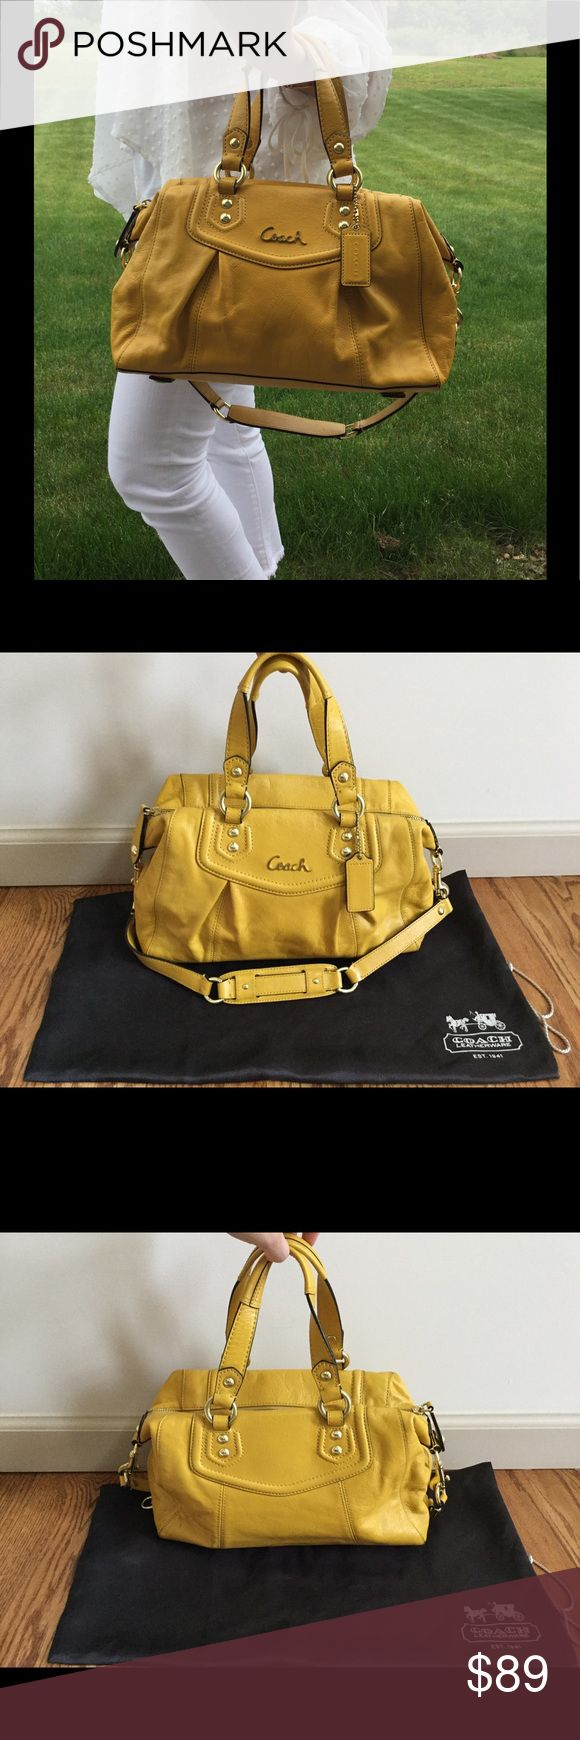 Genuine Leather Coach Satchel Genuine leather - barely used - beautiful mustard yellow color - gold hardware - convertible shoulder strap - two top handles - working zipper closure- two open pockets inside - one working zipper pocket inside - dust bag included - smoke free home - no trades Coach Bags Satchels